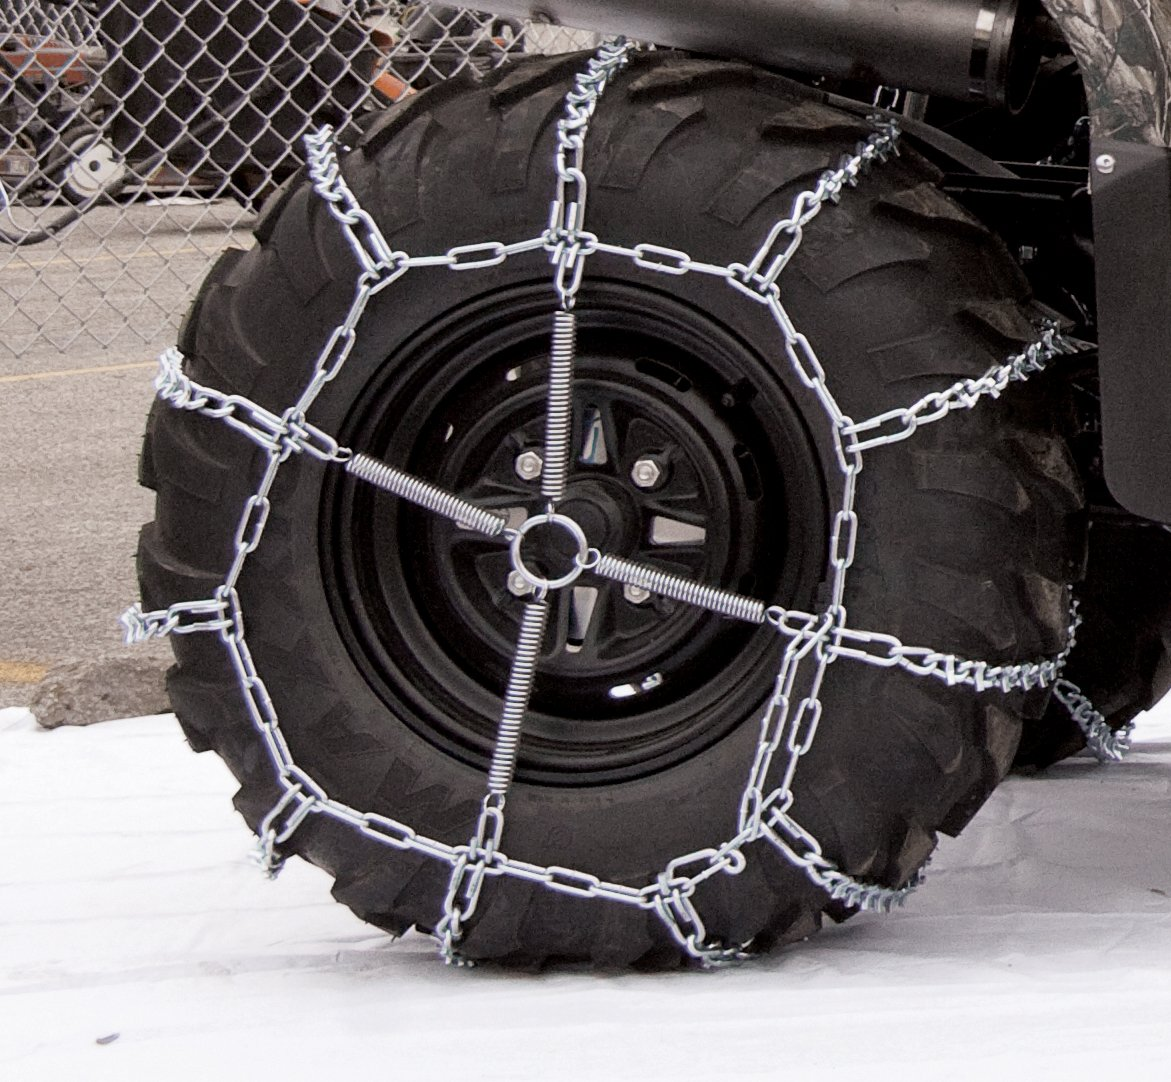 Security Chain Company 1064656 ATV Trac V-Bar Tire Traction Chain SCC